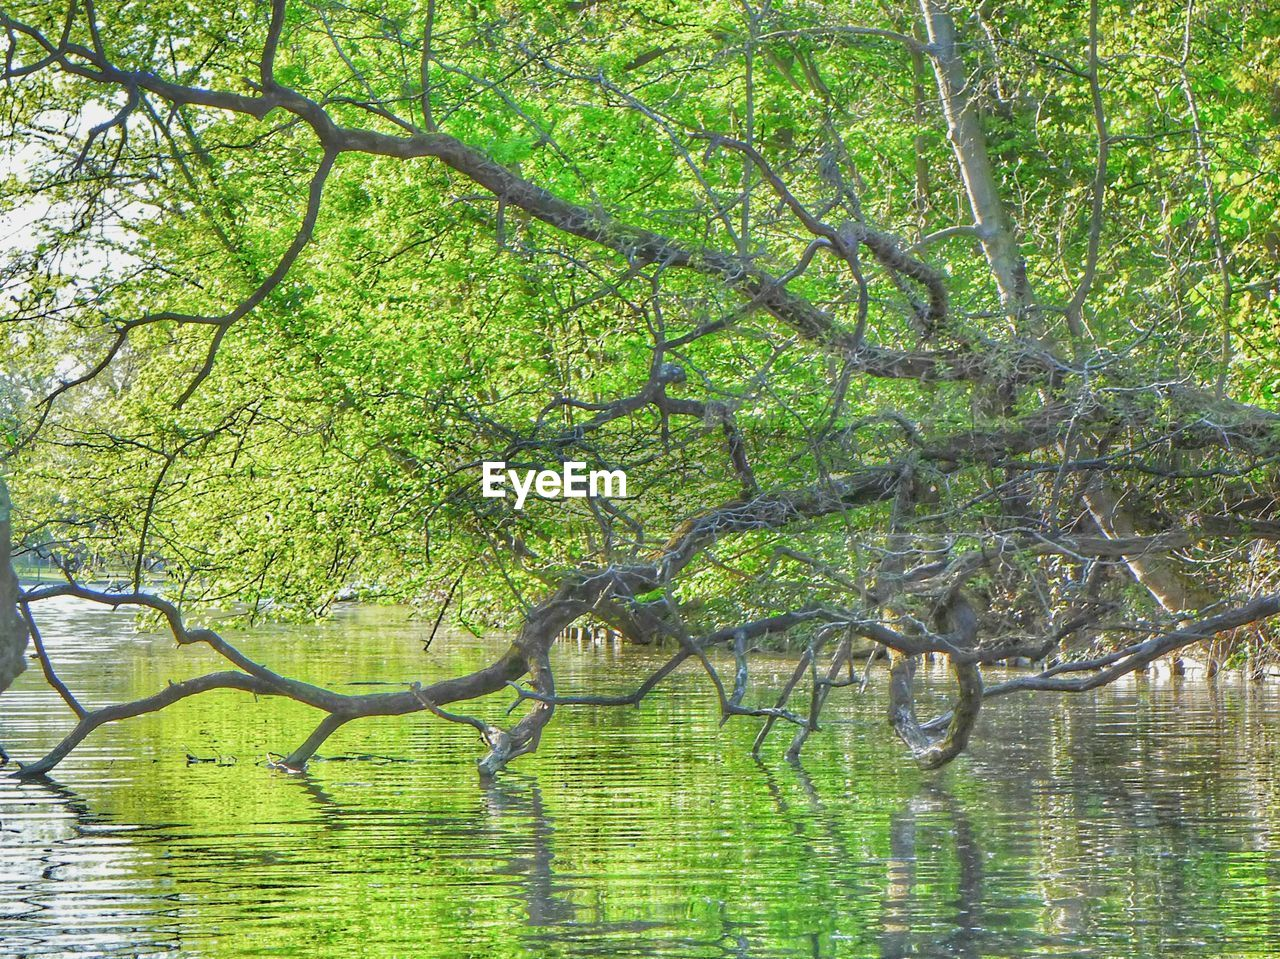 tree, plant, growth, green color, beauty in nature, branch, nature, tranquility, no people, day, water, outdoors, lake, trunk, tree trunk, forest, land, tranquil scene, scenics - nature